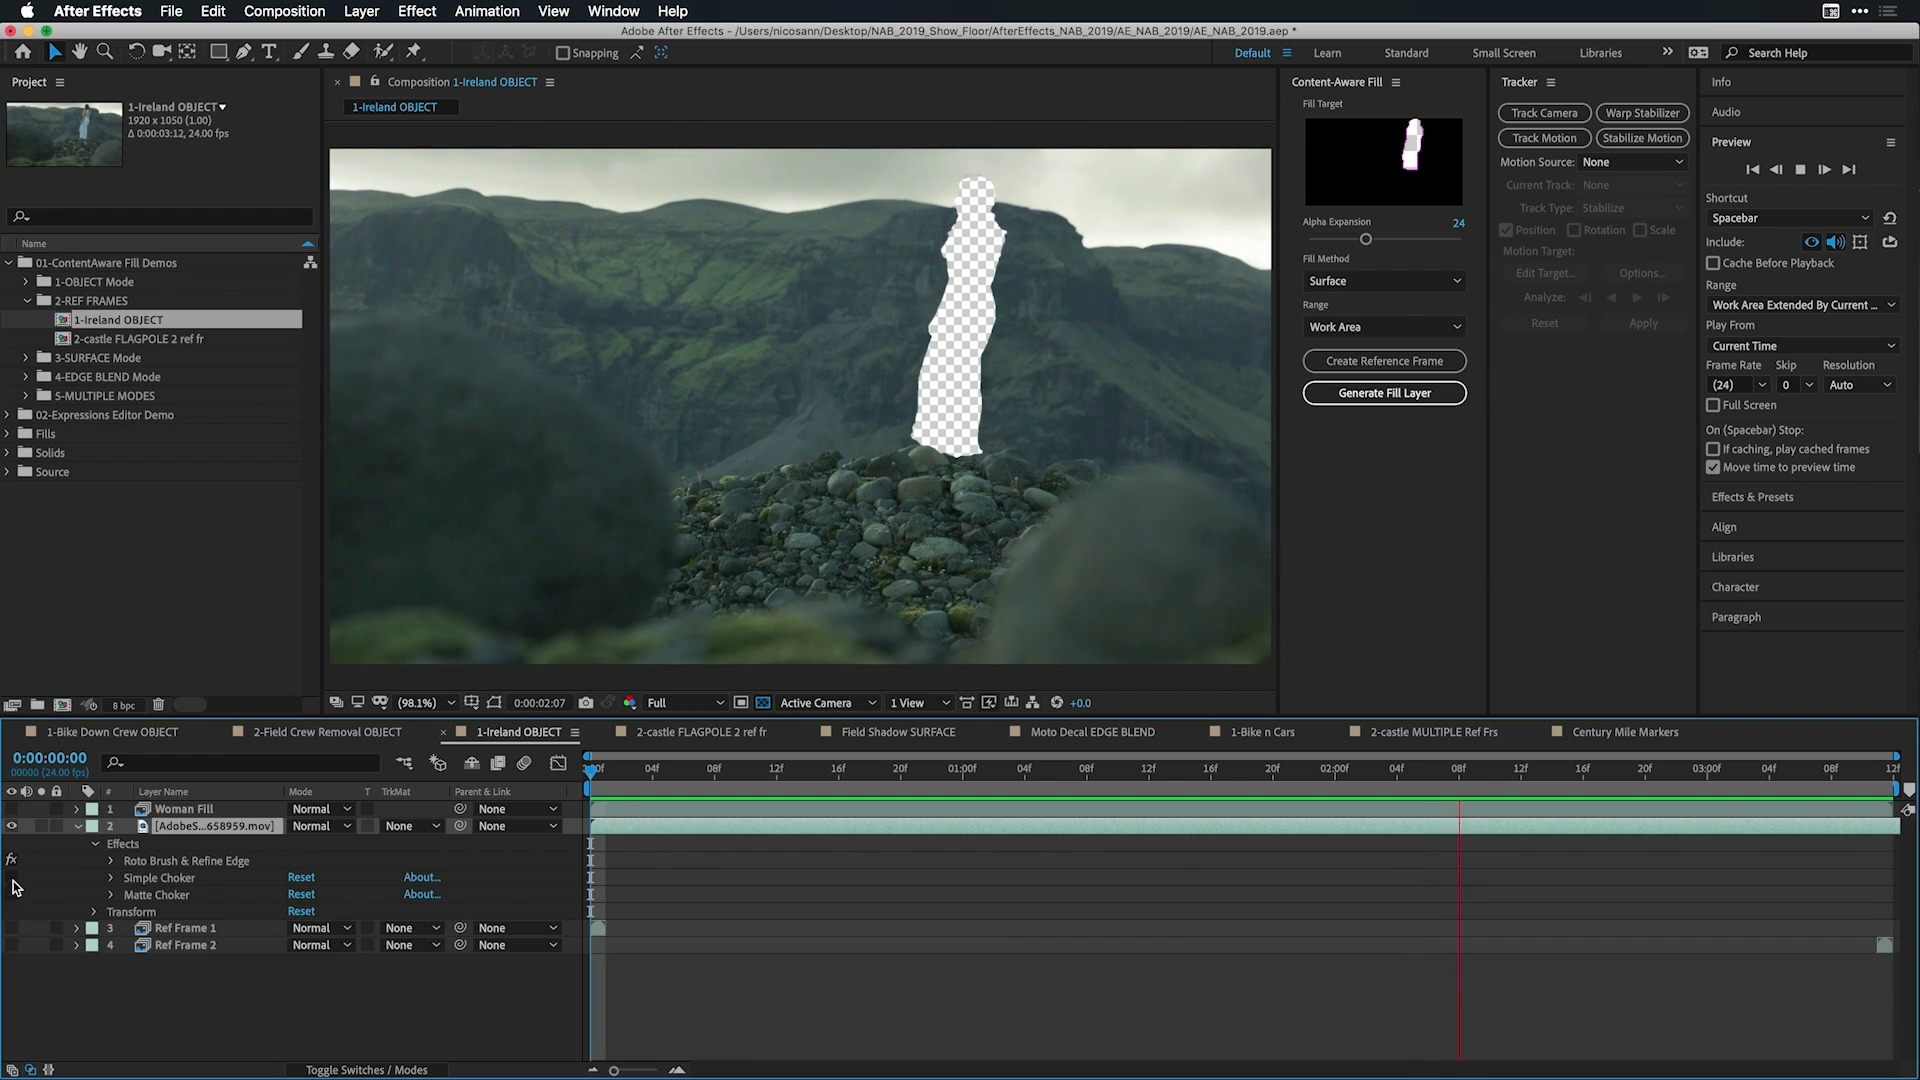 El nuevo After Effects te permite borrar objetos igual que Photoshop, pero en video